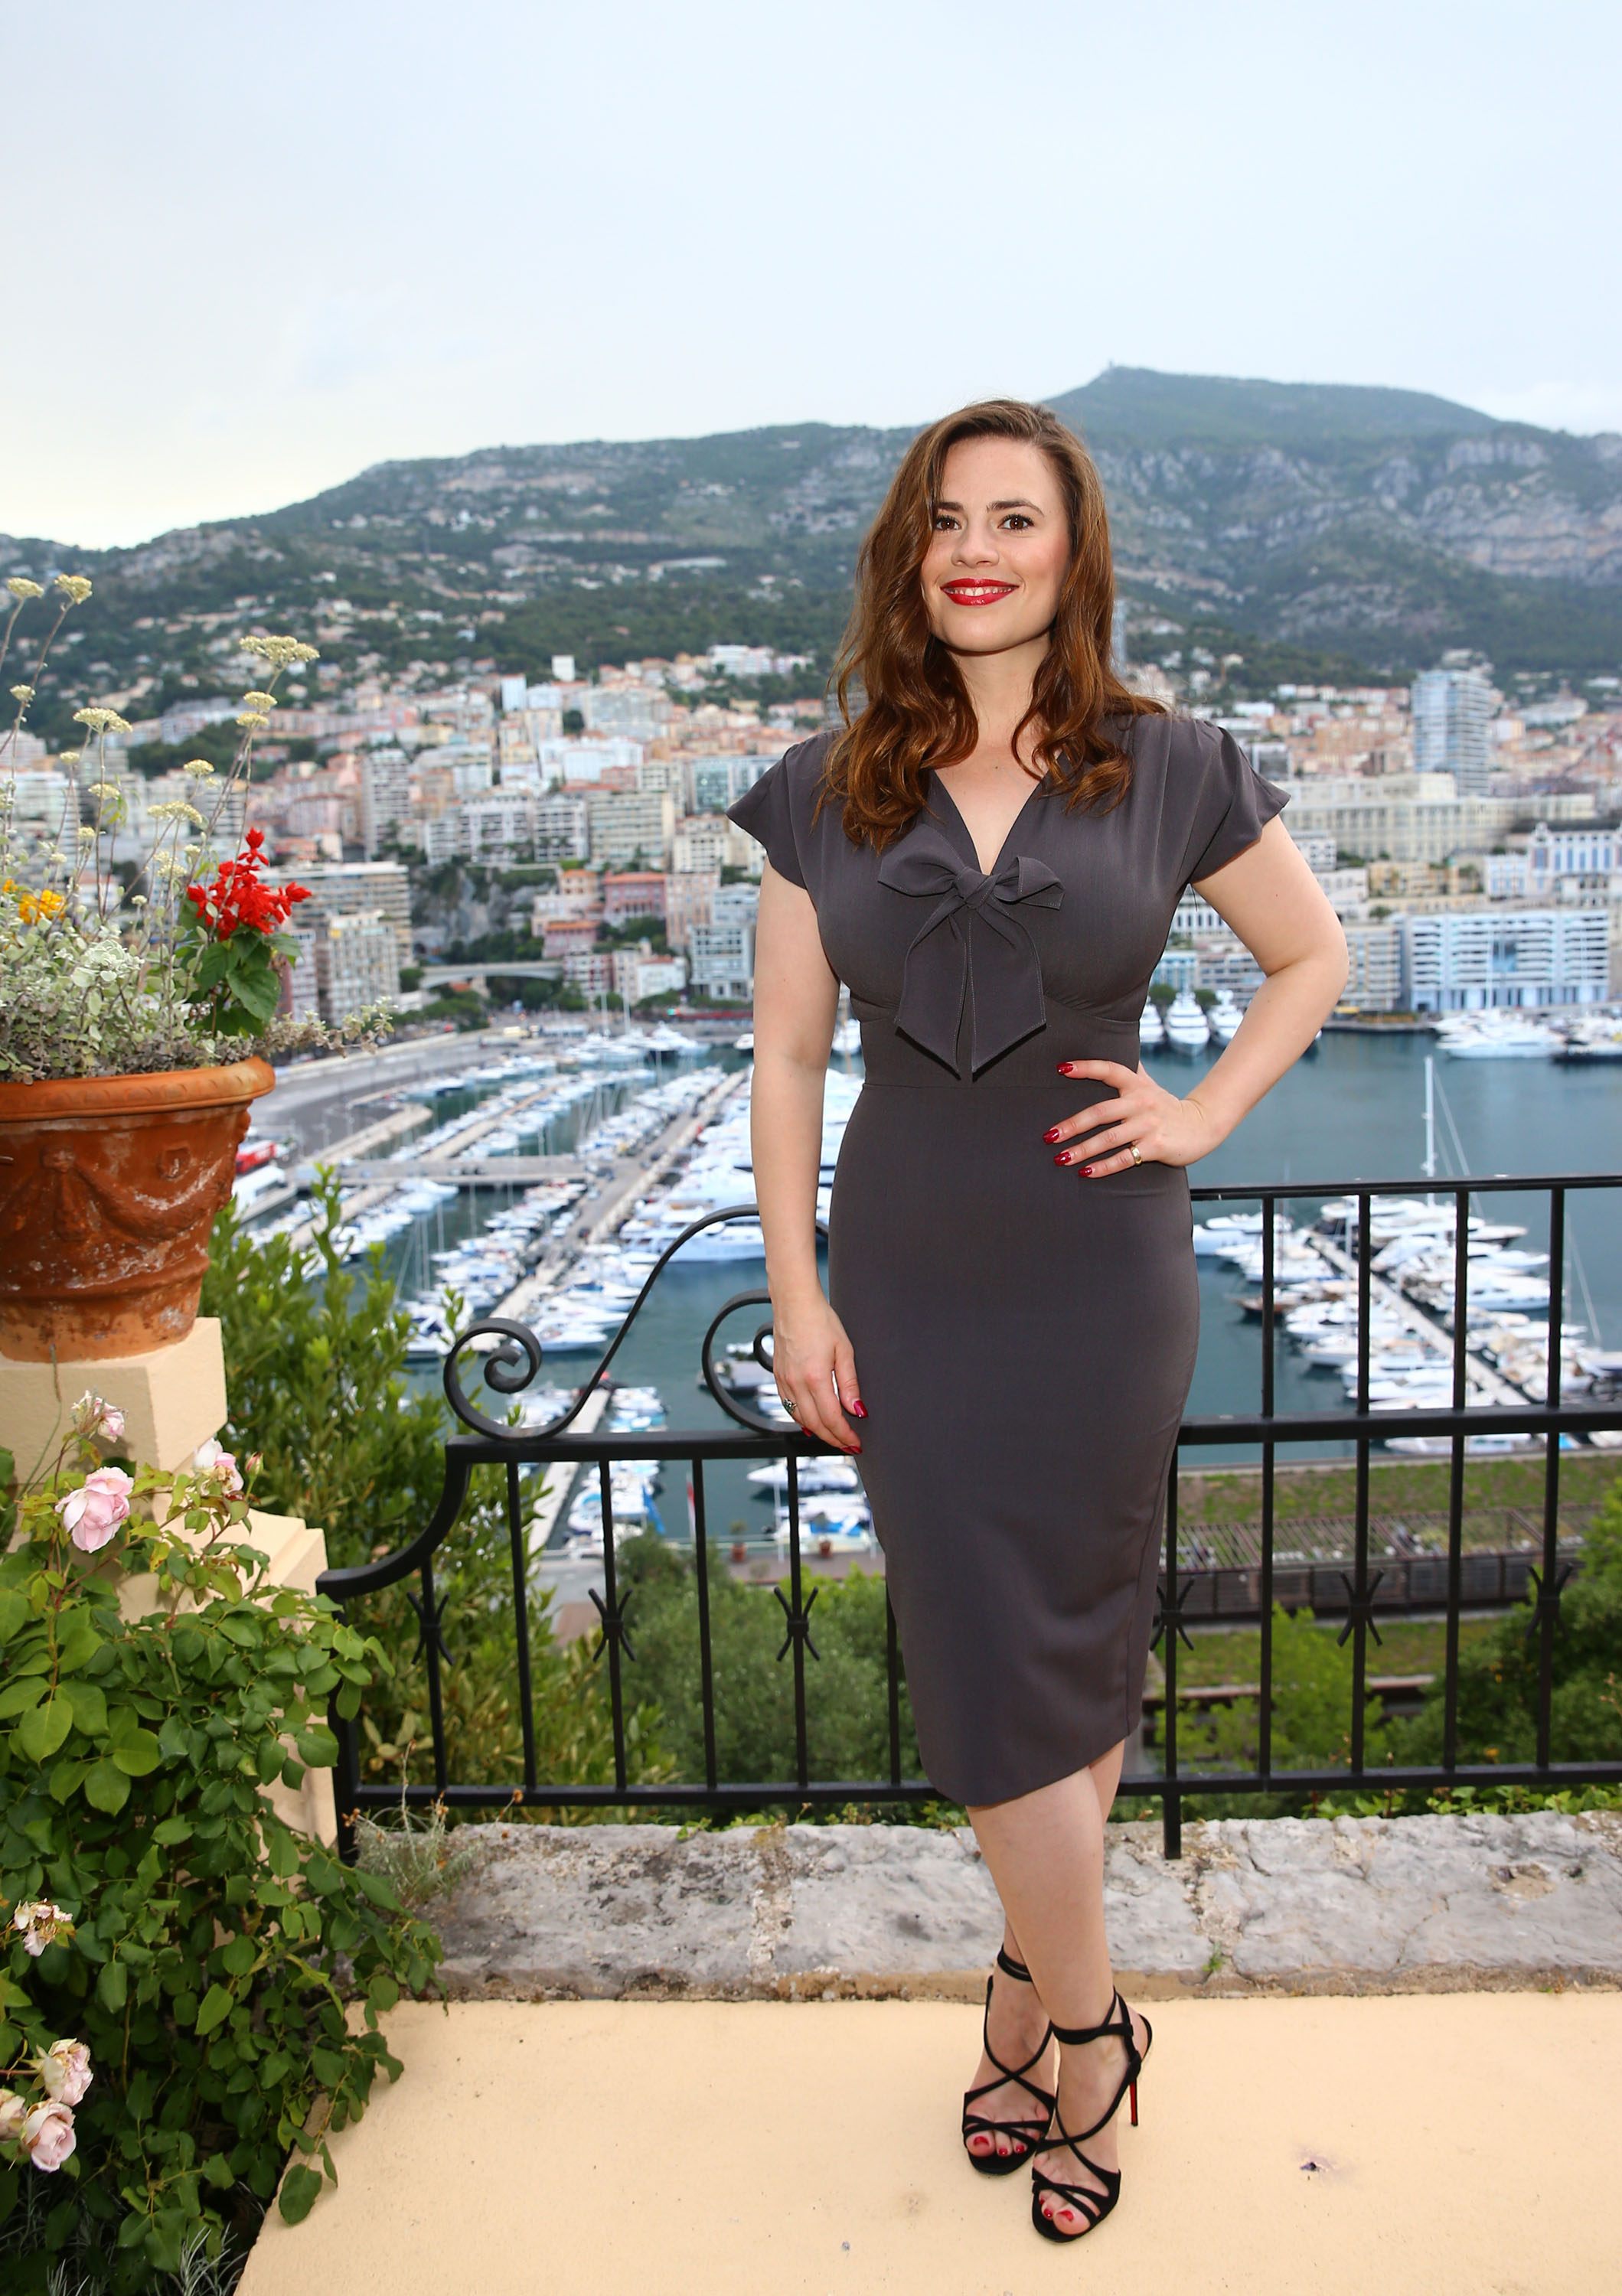 Fugs and Fabs: A Variety of Events at the Monte Carlo TV Festival